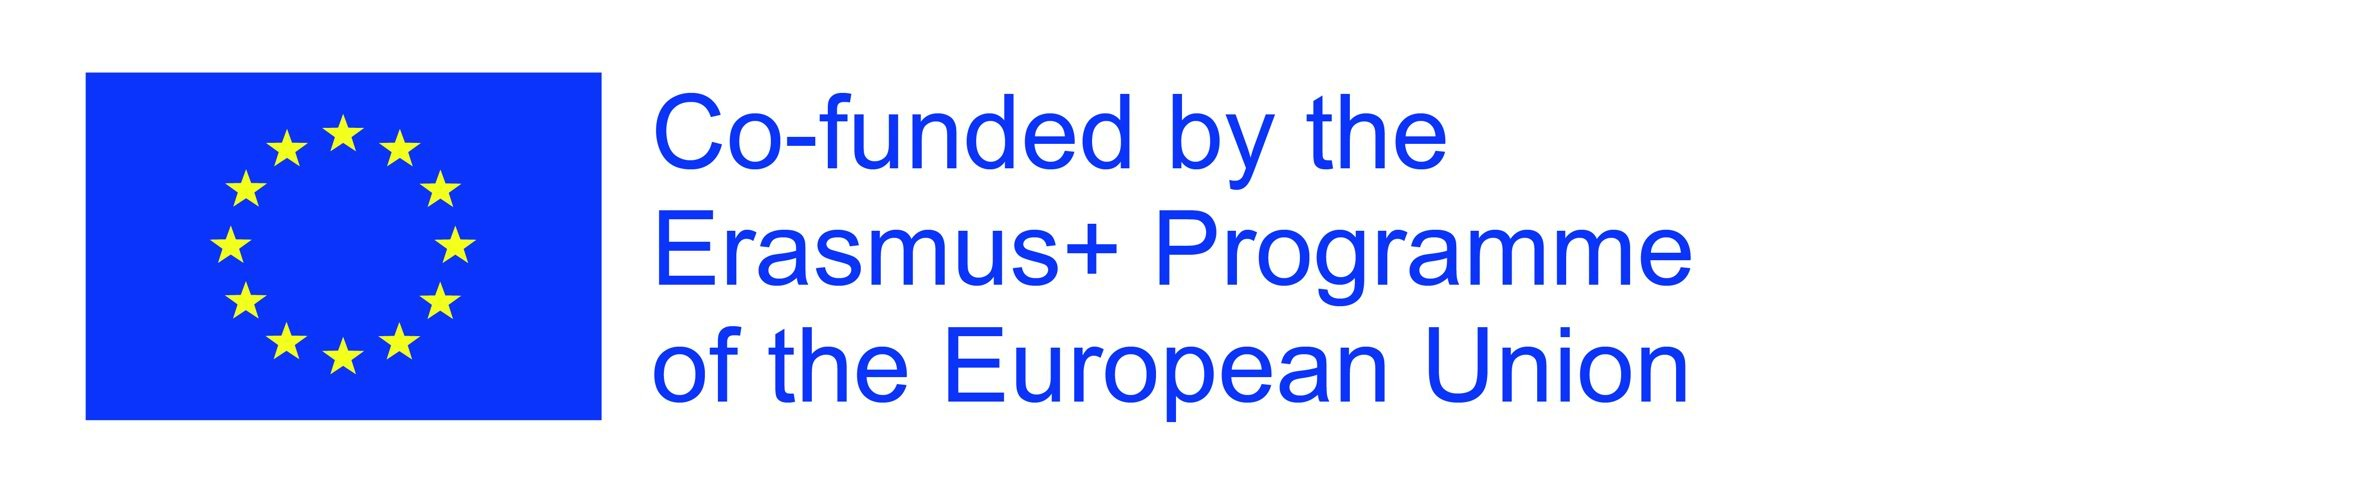 EU flag along with the text: Co-funded by Erasmus+